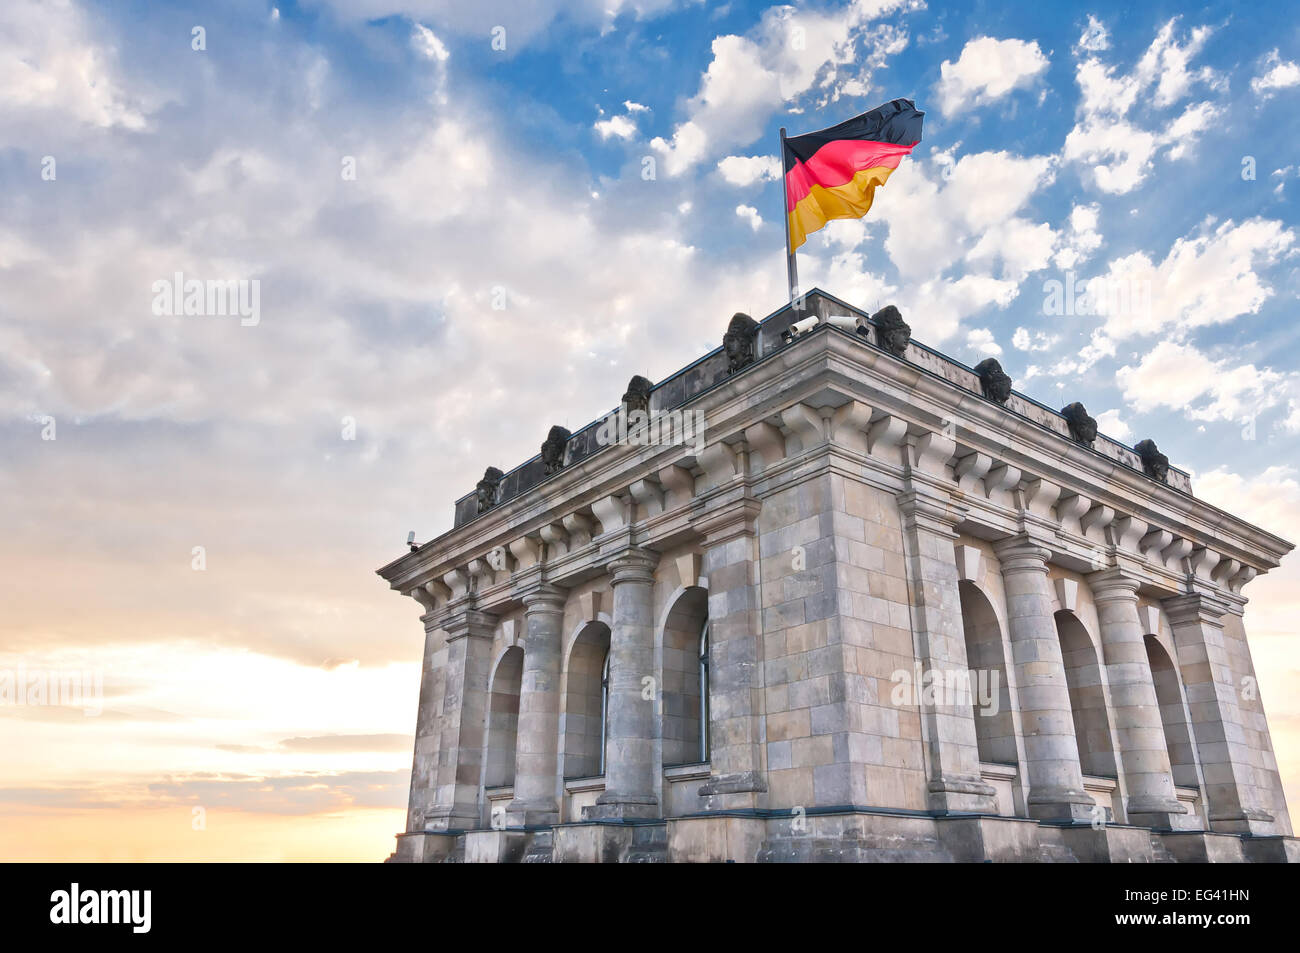 German Parliament or Bundestag with national flag in Berlin, Germany - Stock Image